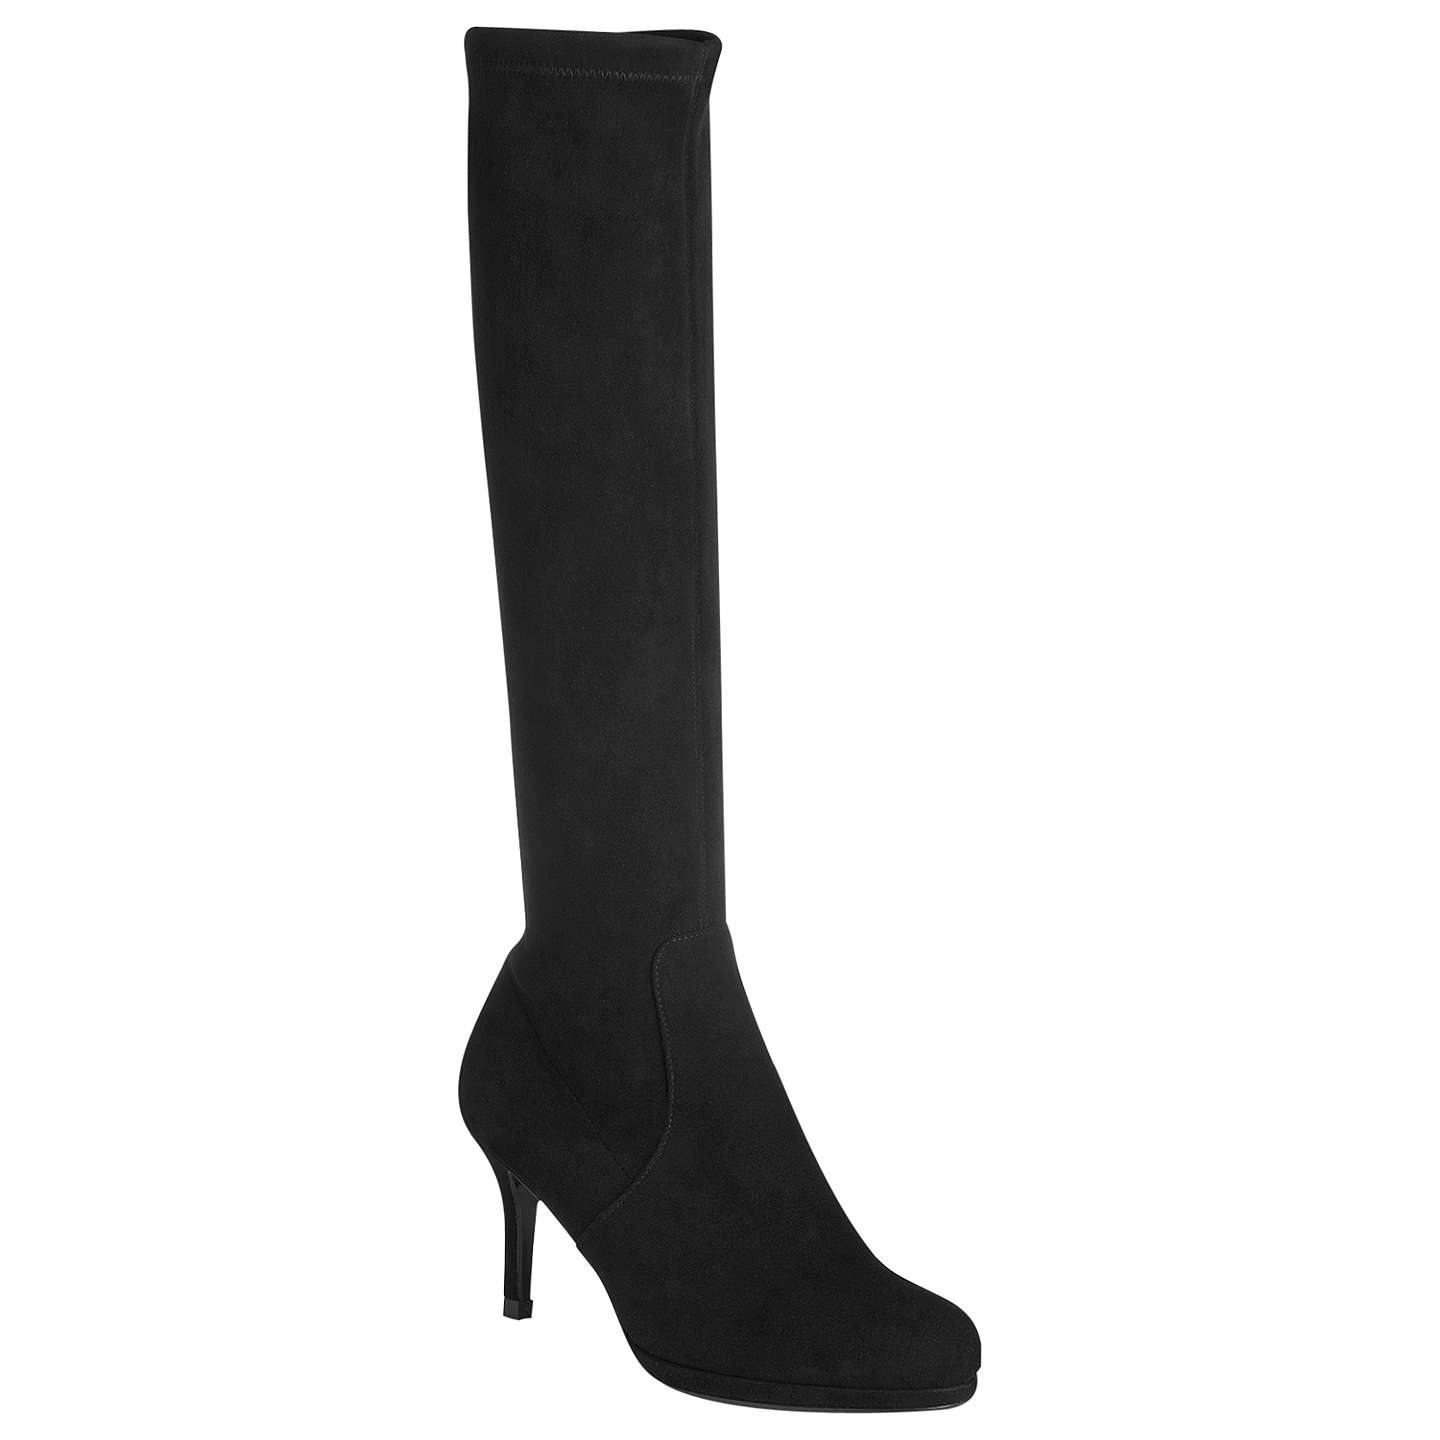 BuyL.K. Bennett Sylvie Knee High Boots, Black, 3 Online at johnlewis.com